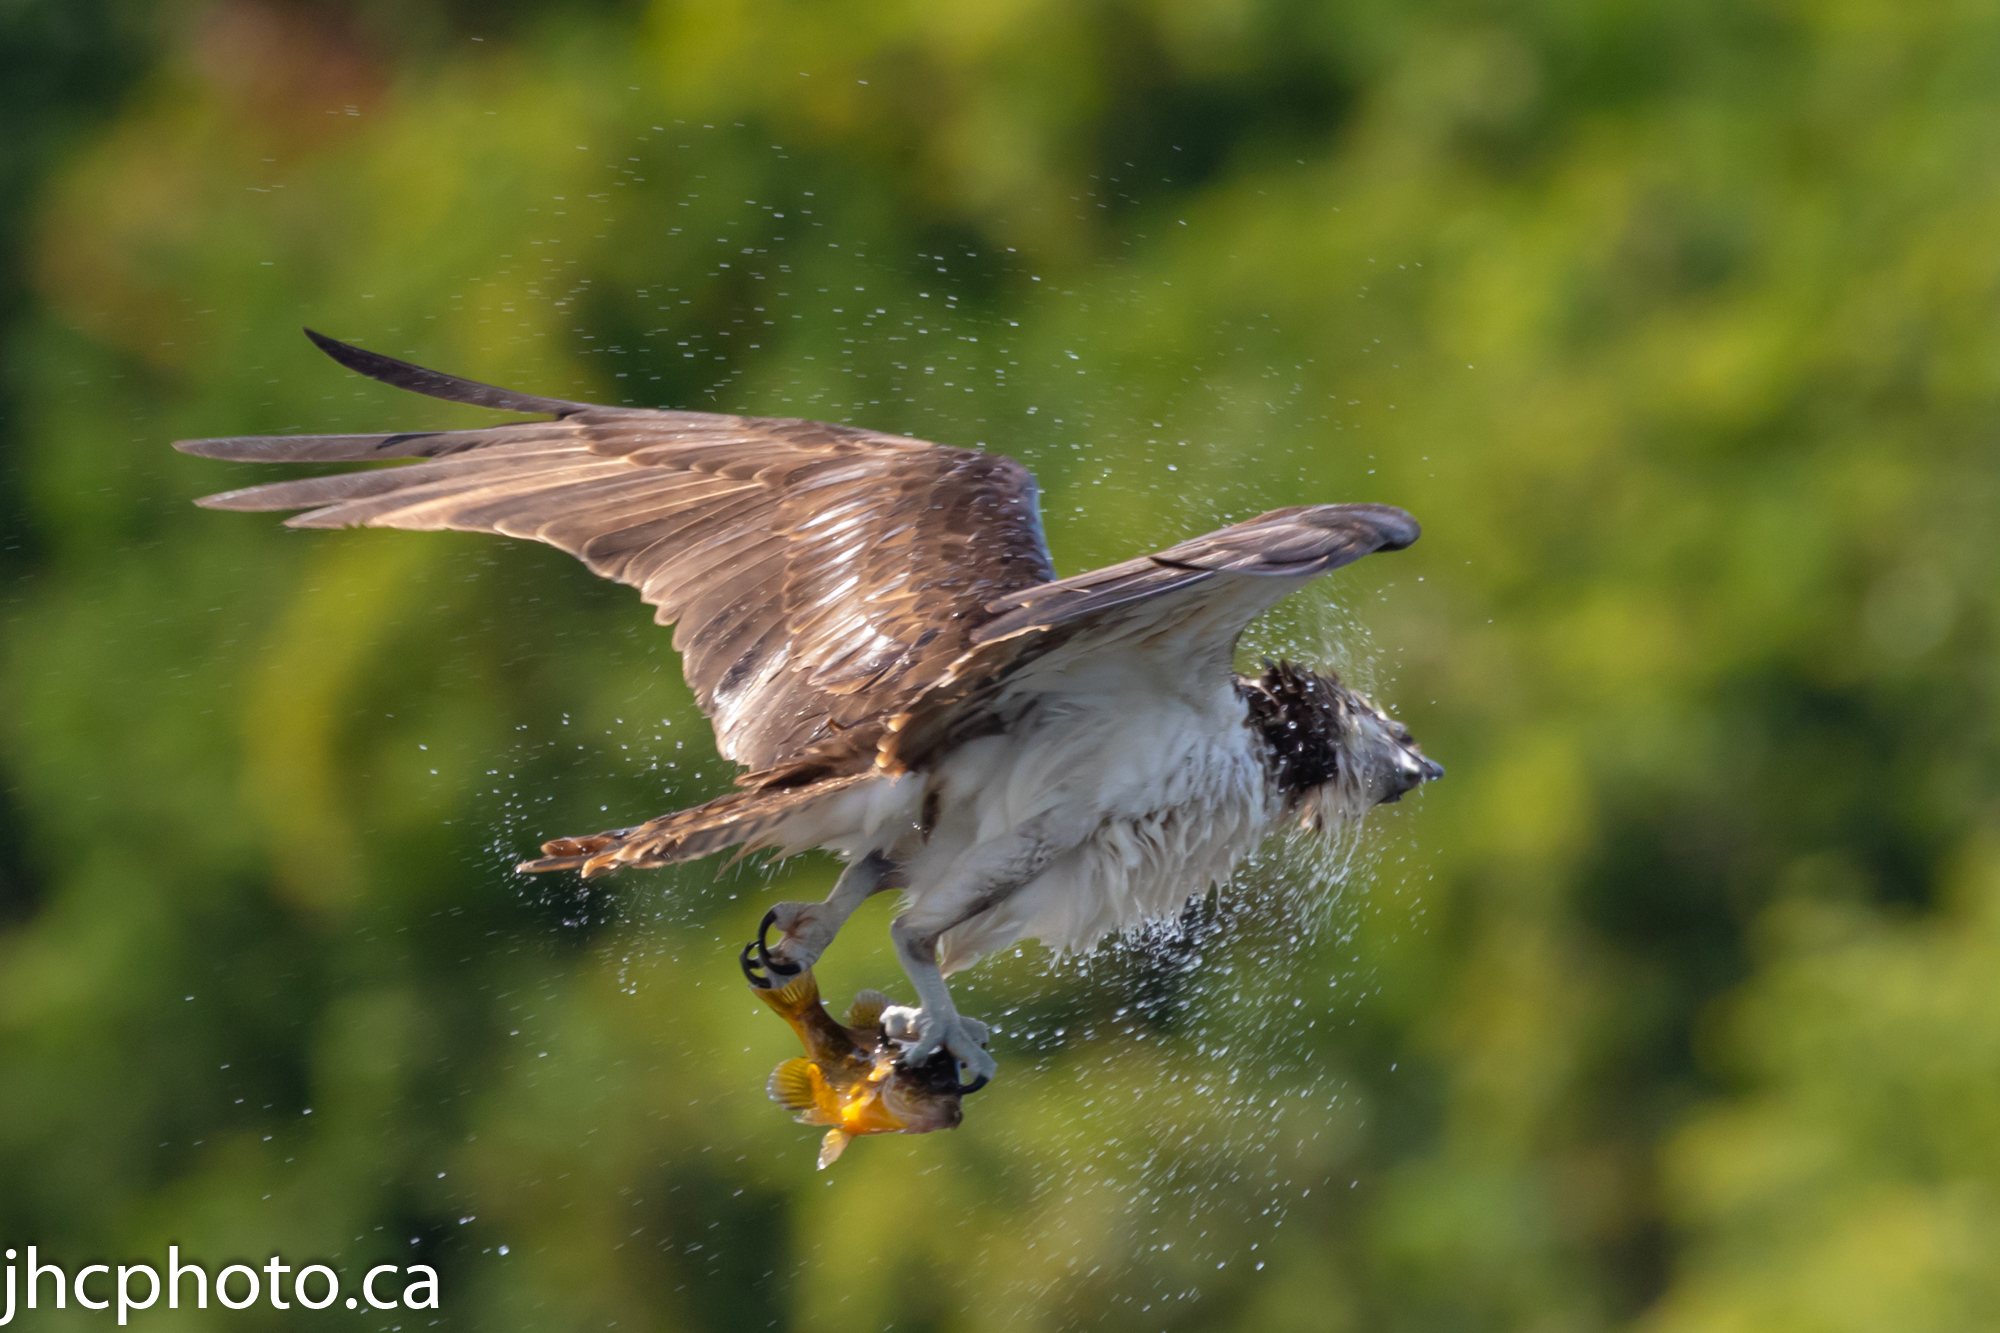 Osprey Shakes Off Water